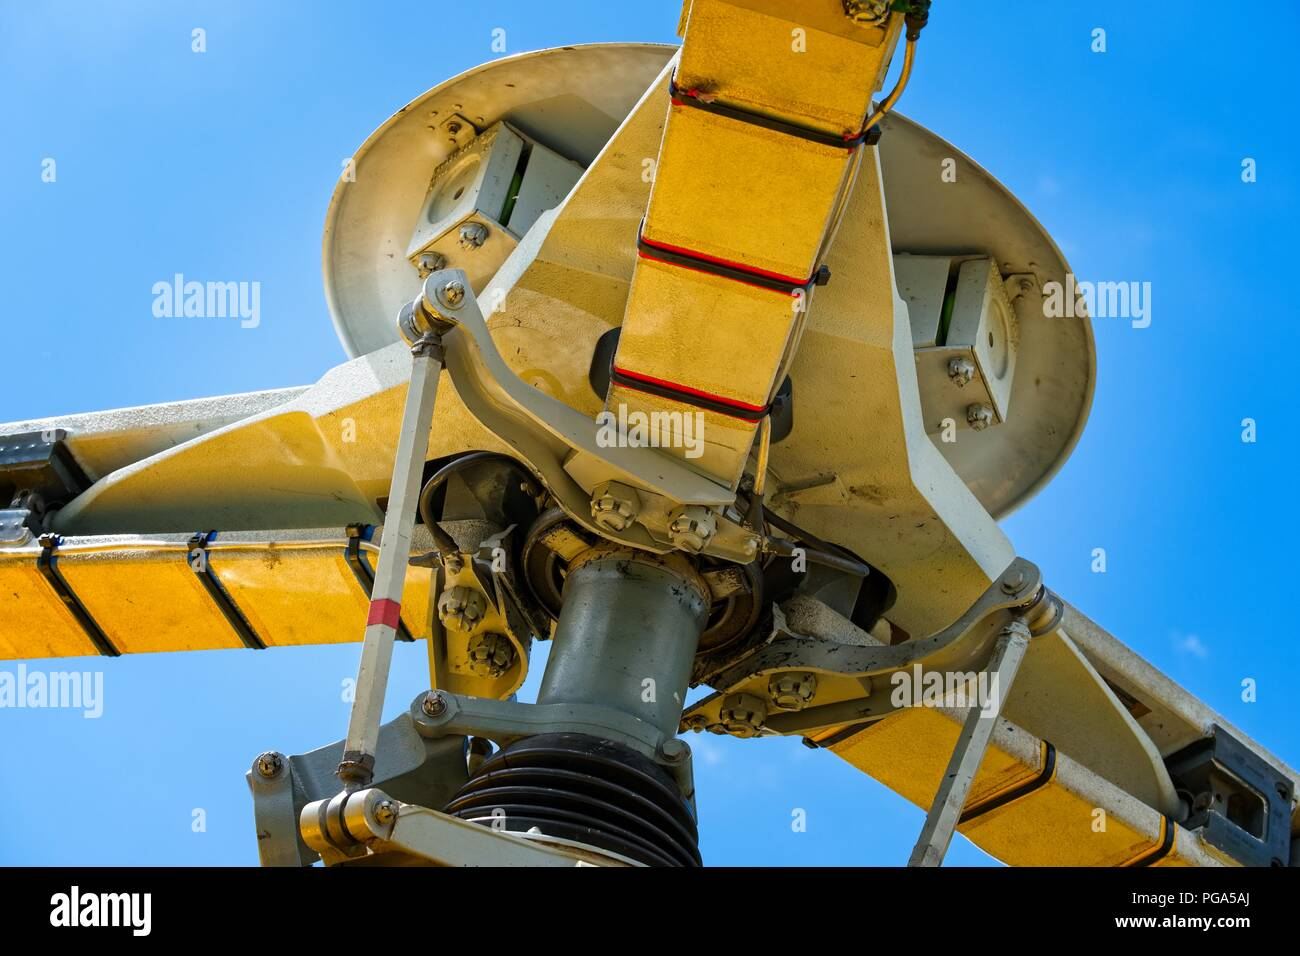 Close up of the rotors blades of a yellow Helicopter against a bright blue sky - Stock Image